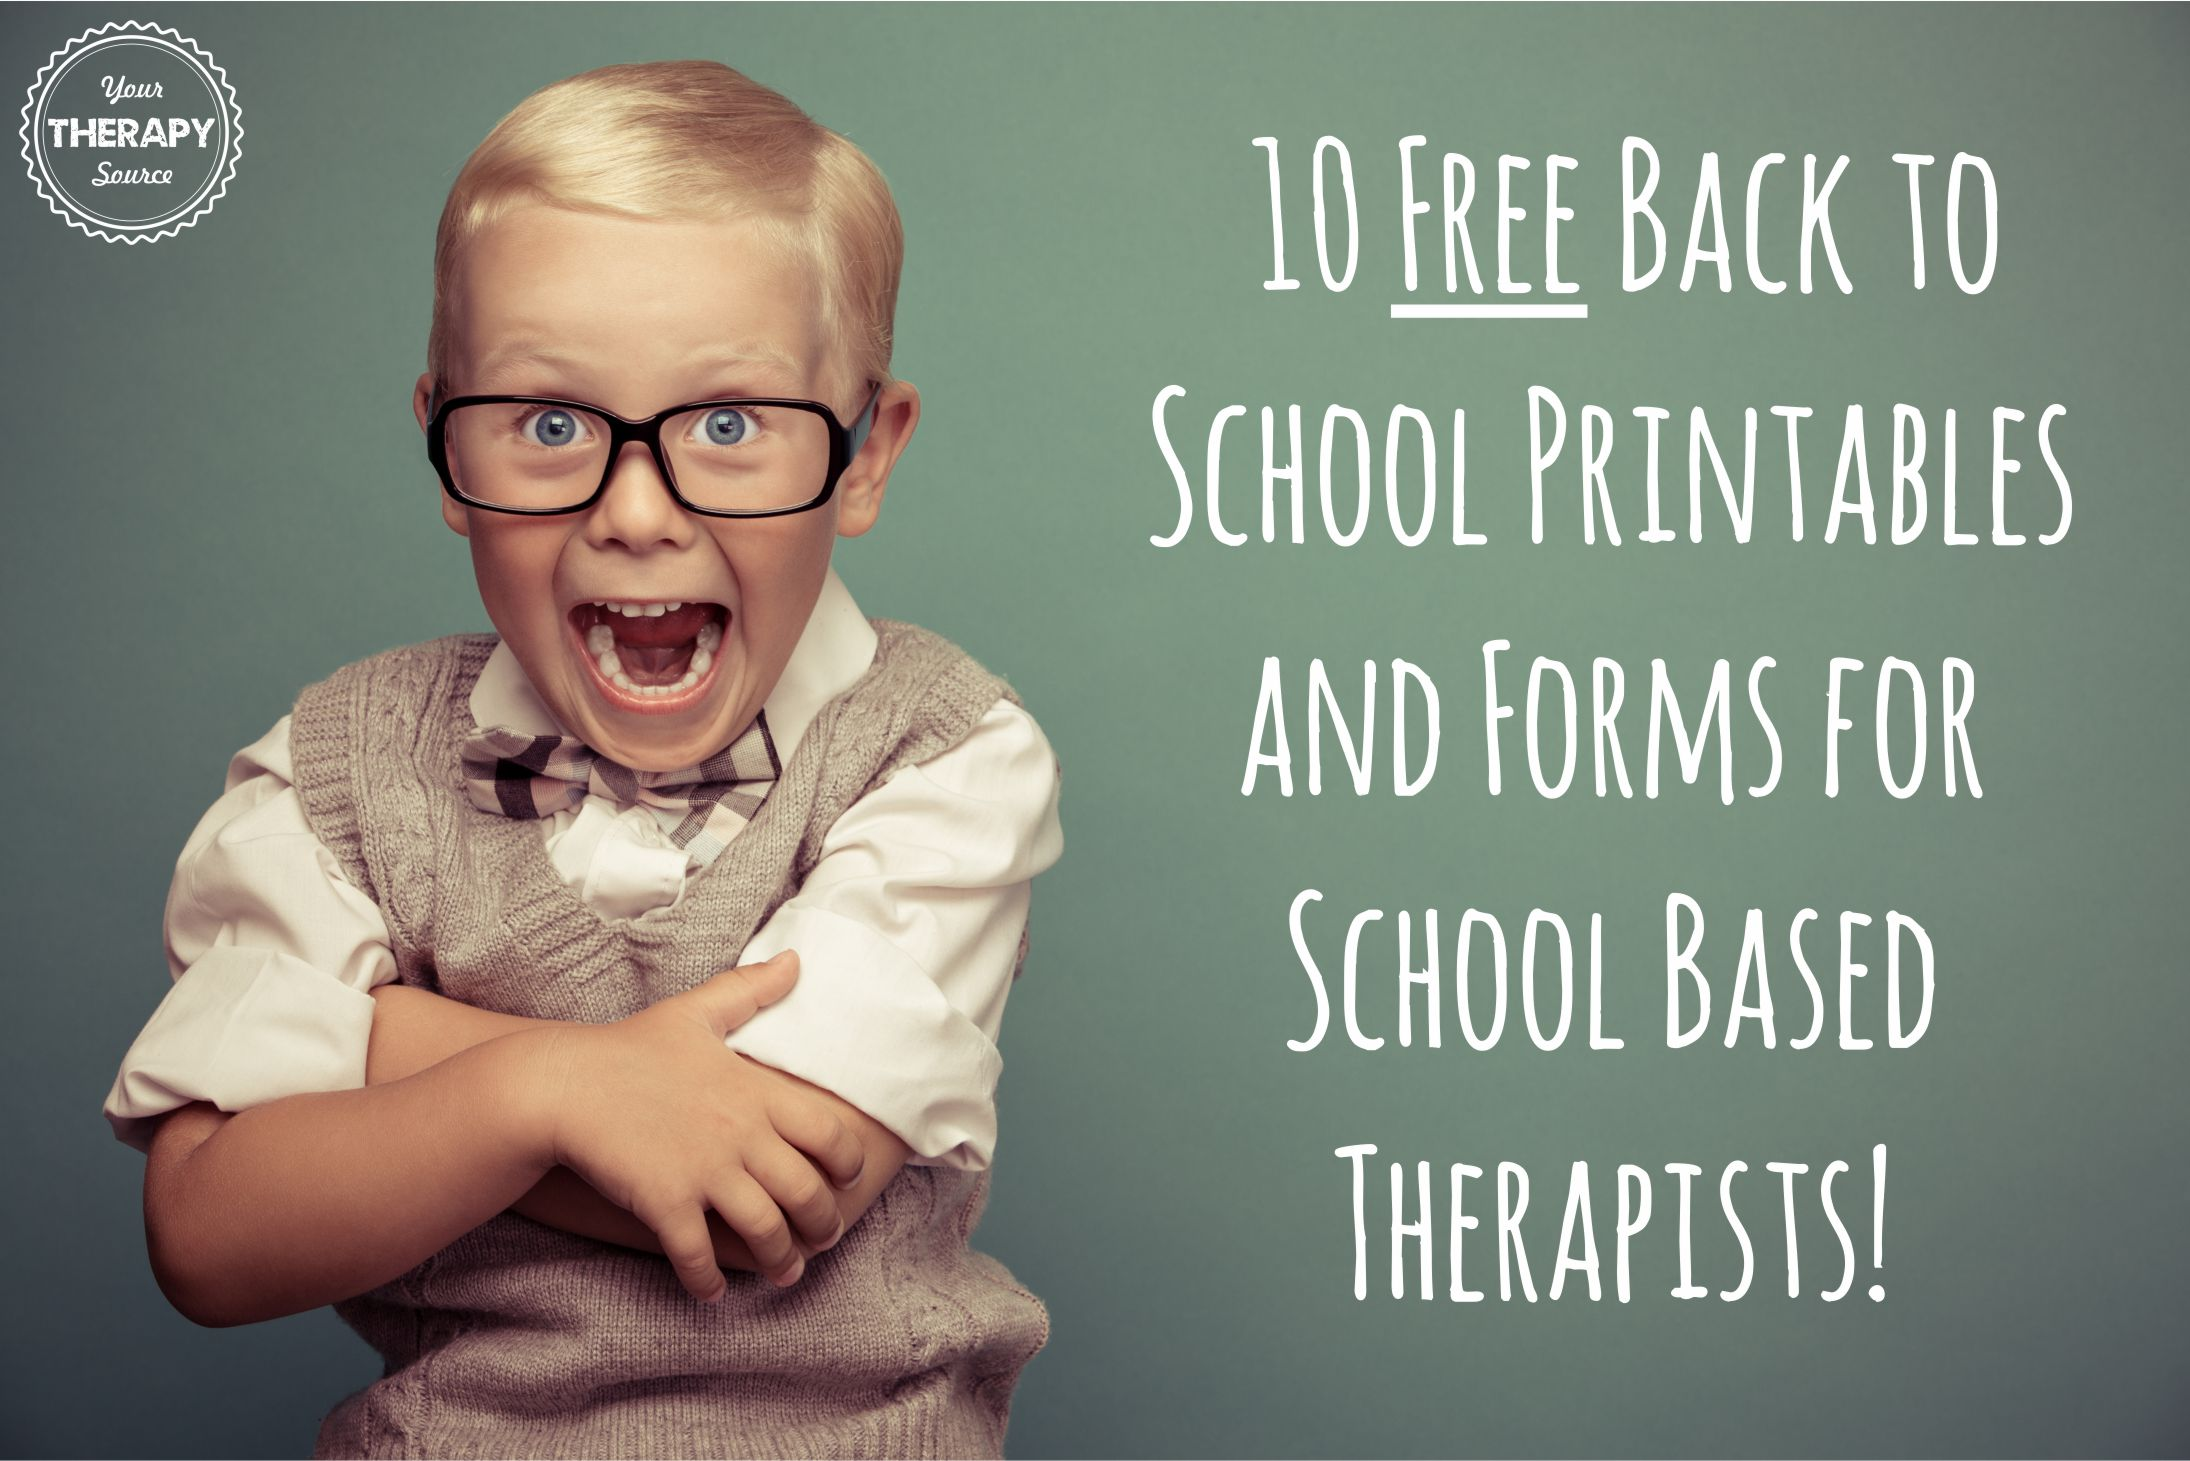 10 Free Back To School Printables And Forms For School